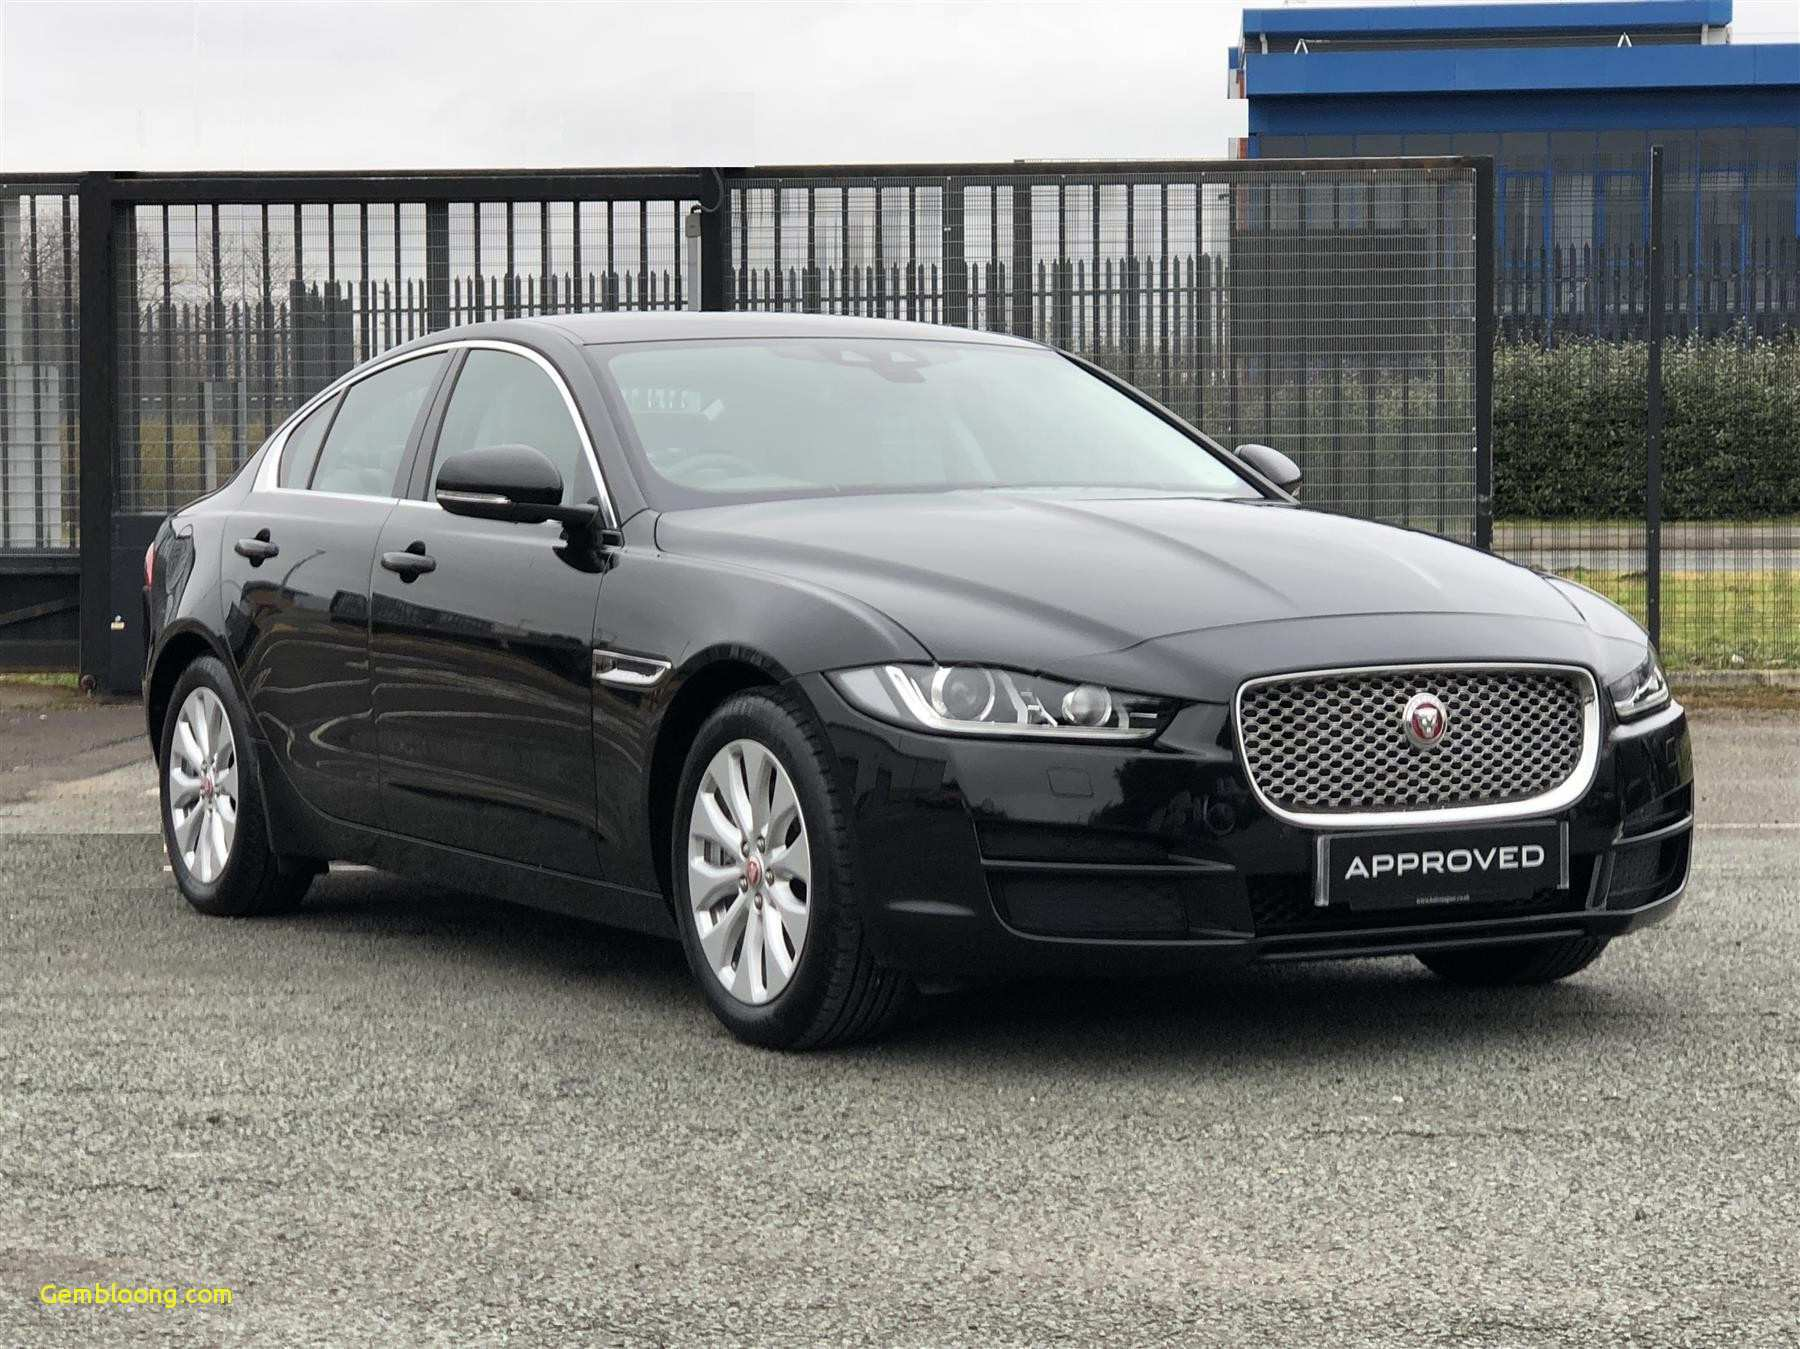 97 All New 2020 Jaguar Station Wagon New Review for 2020 Jaguar Station Wagon